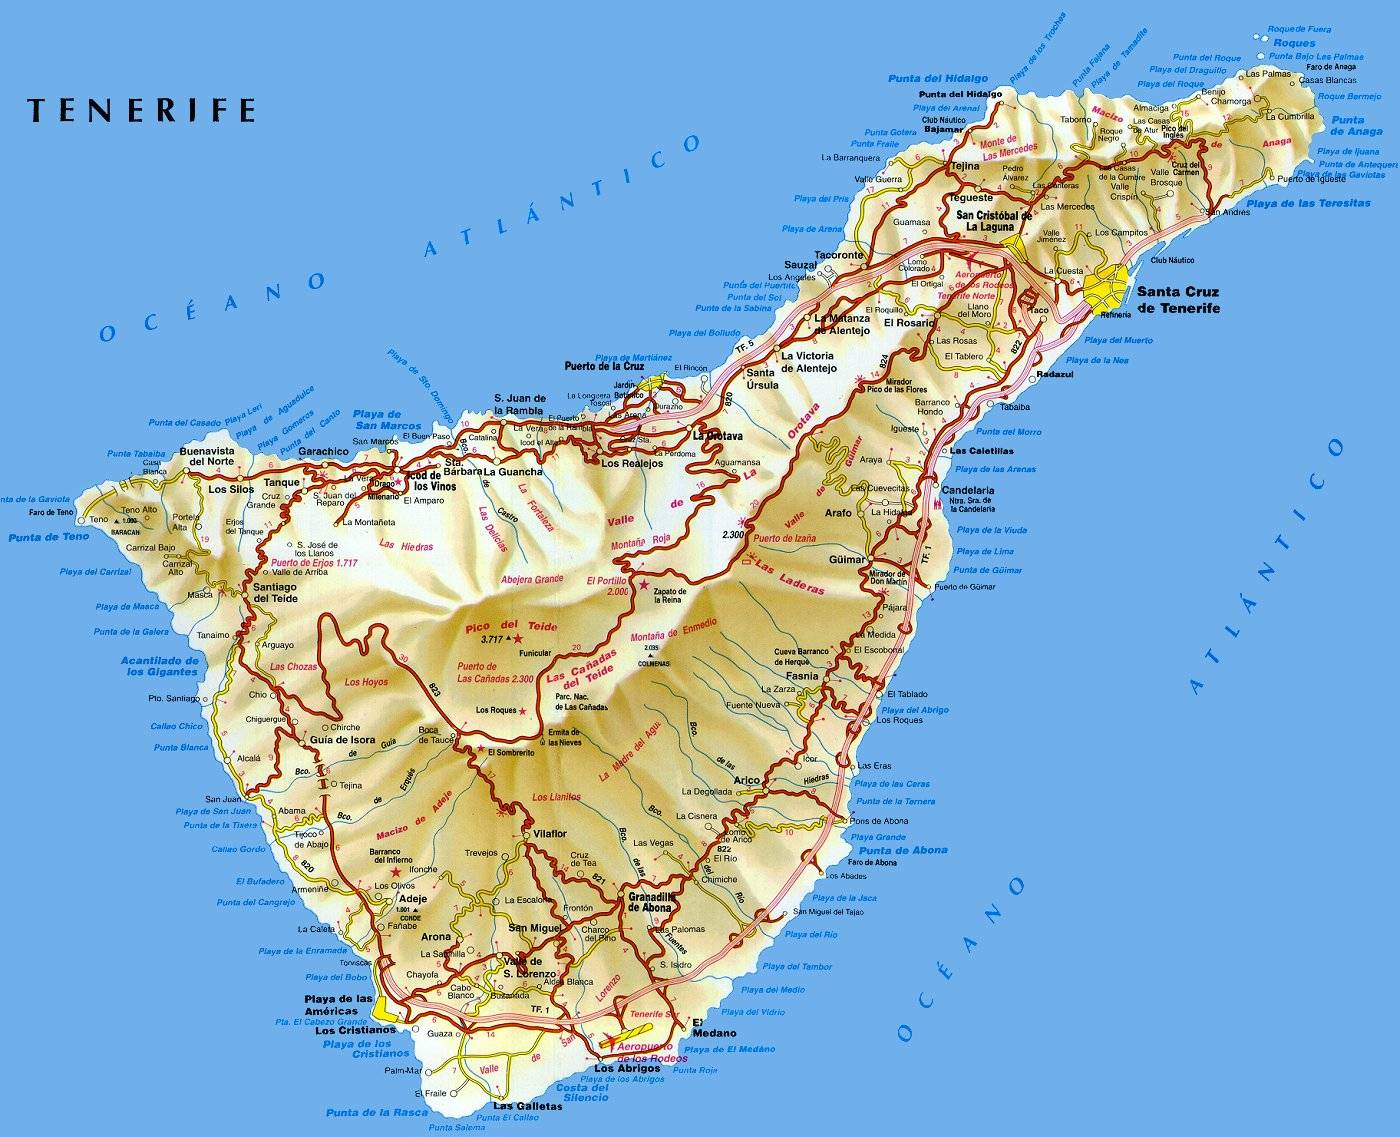 karta teneriffa Large Tenerife Maps for Free Download and Print | High Resolution  karta teneriffa